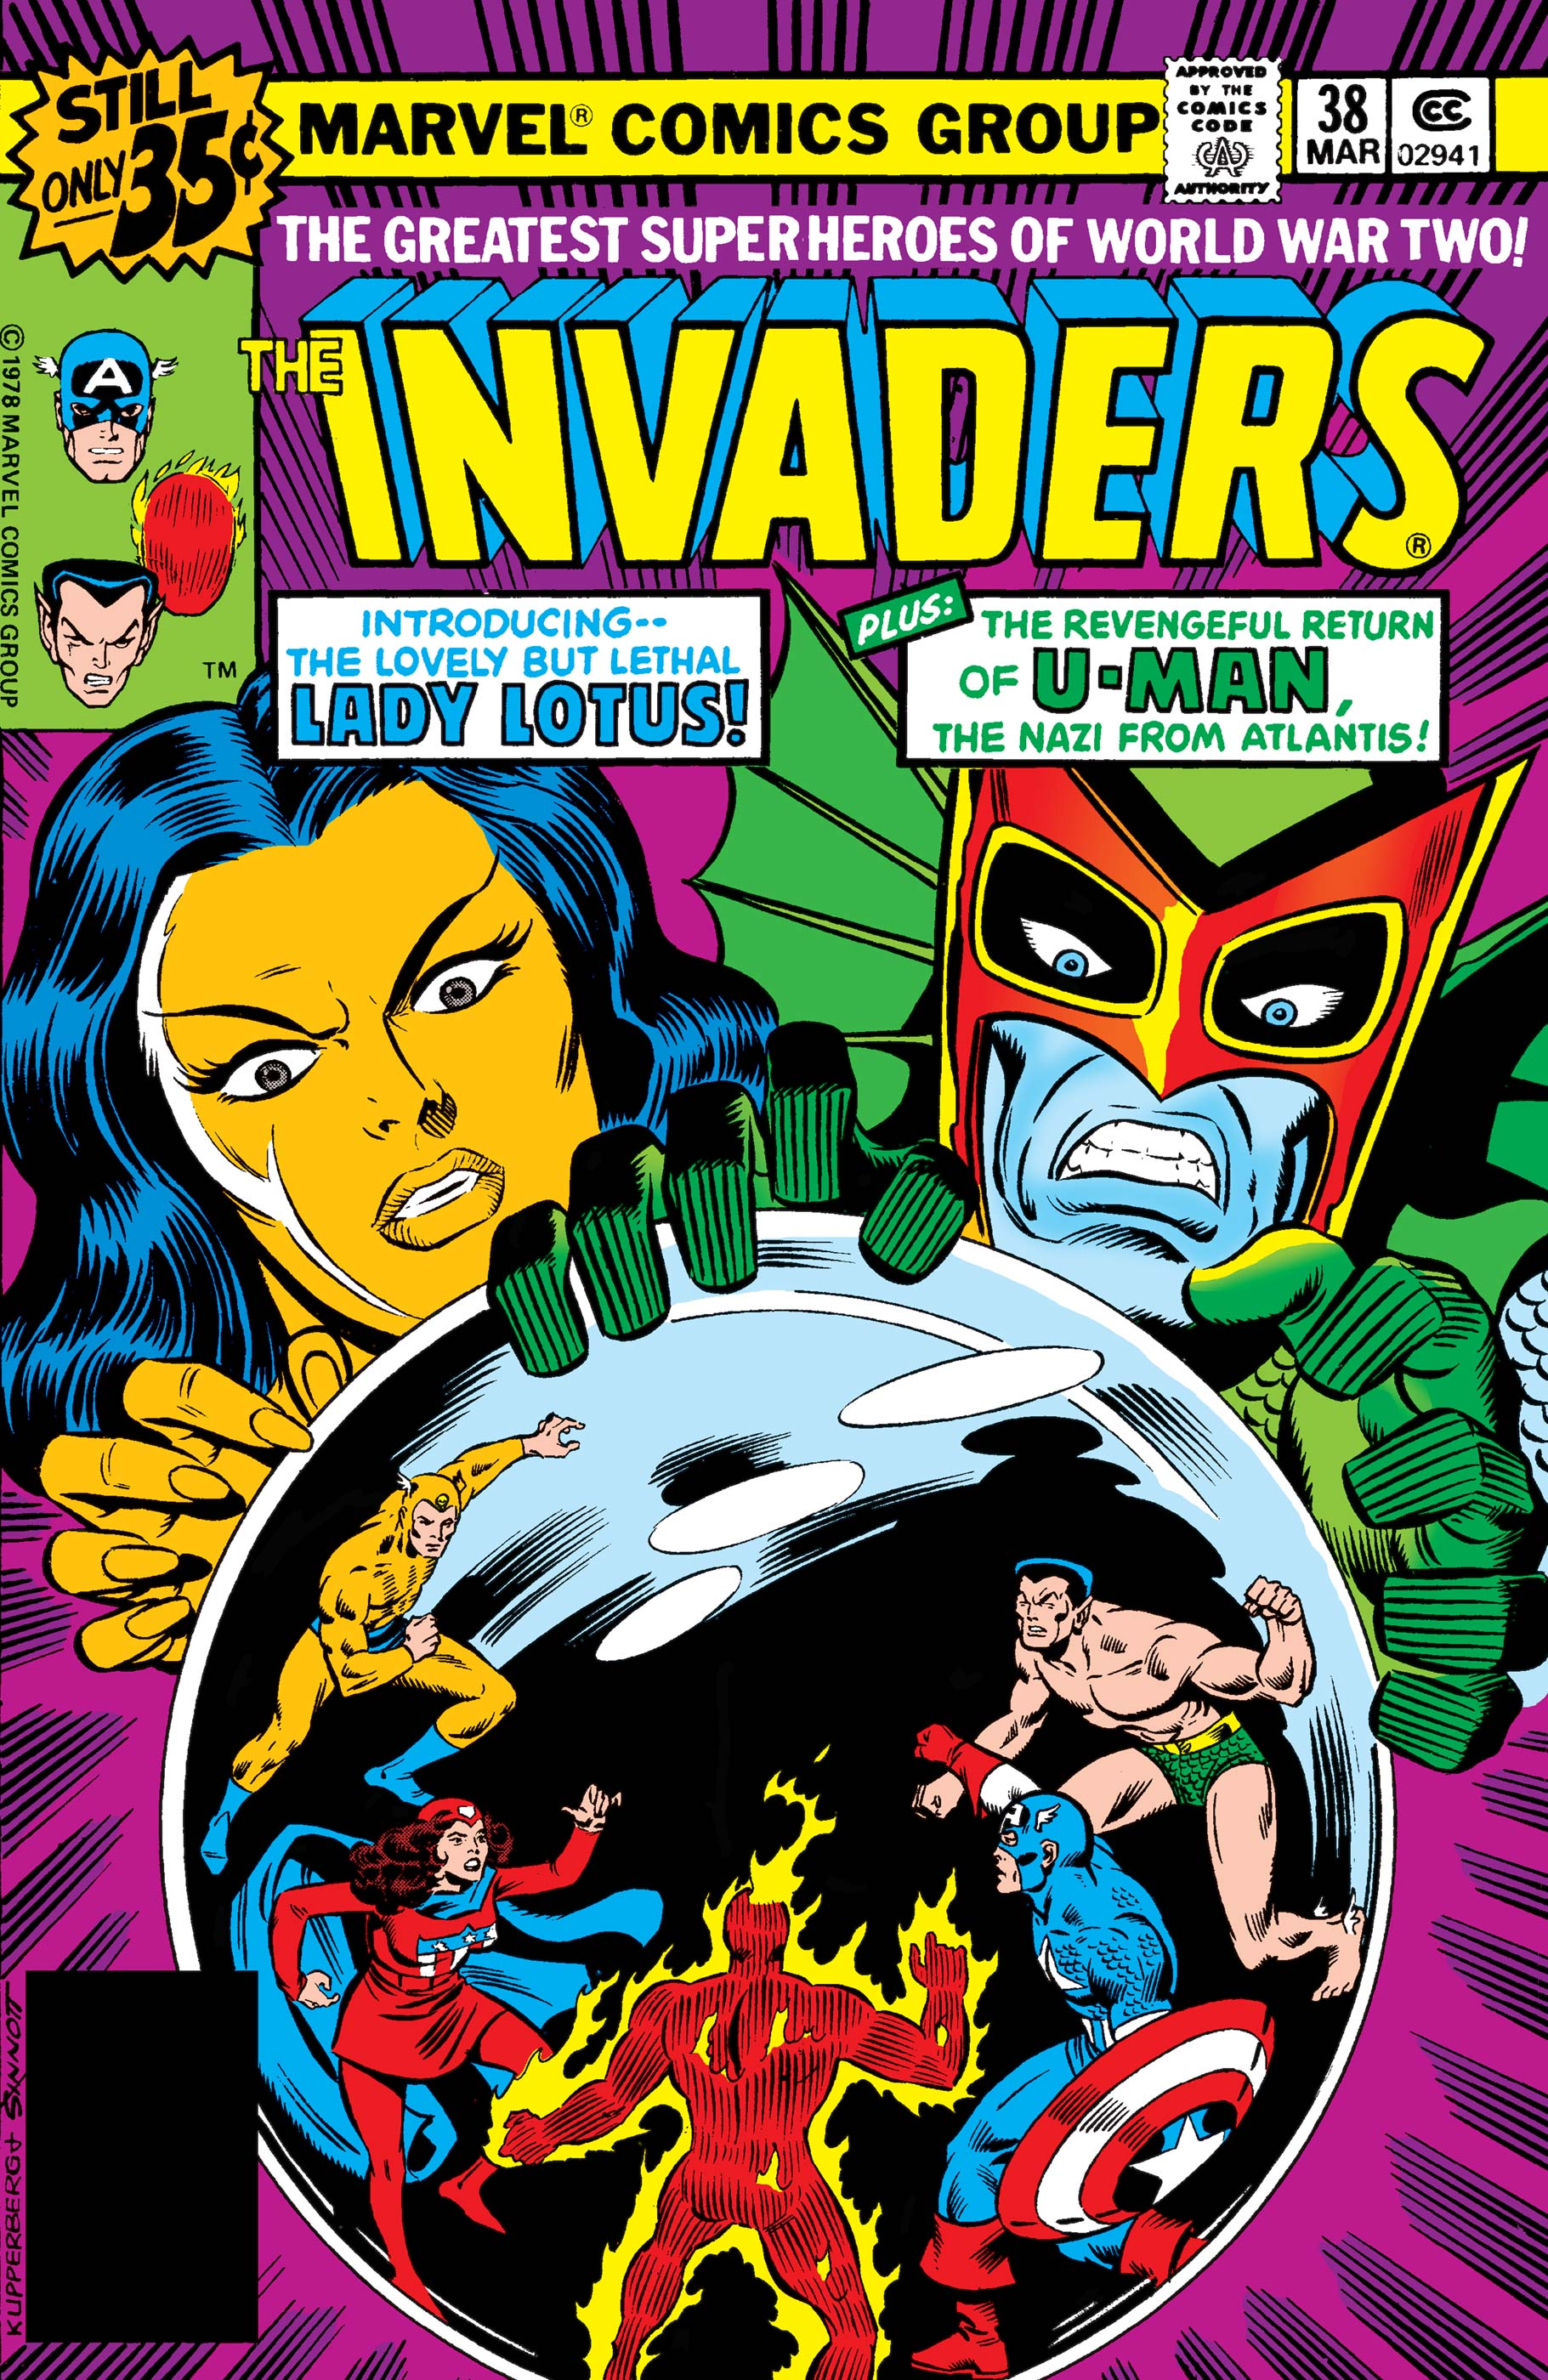 Invaders (1975) #38